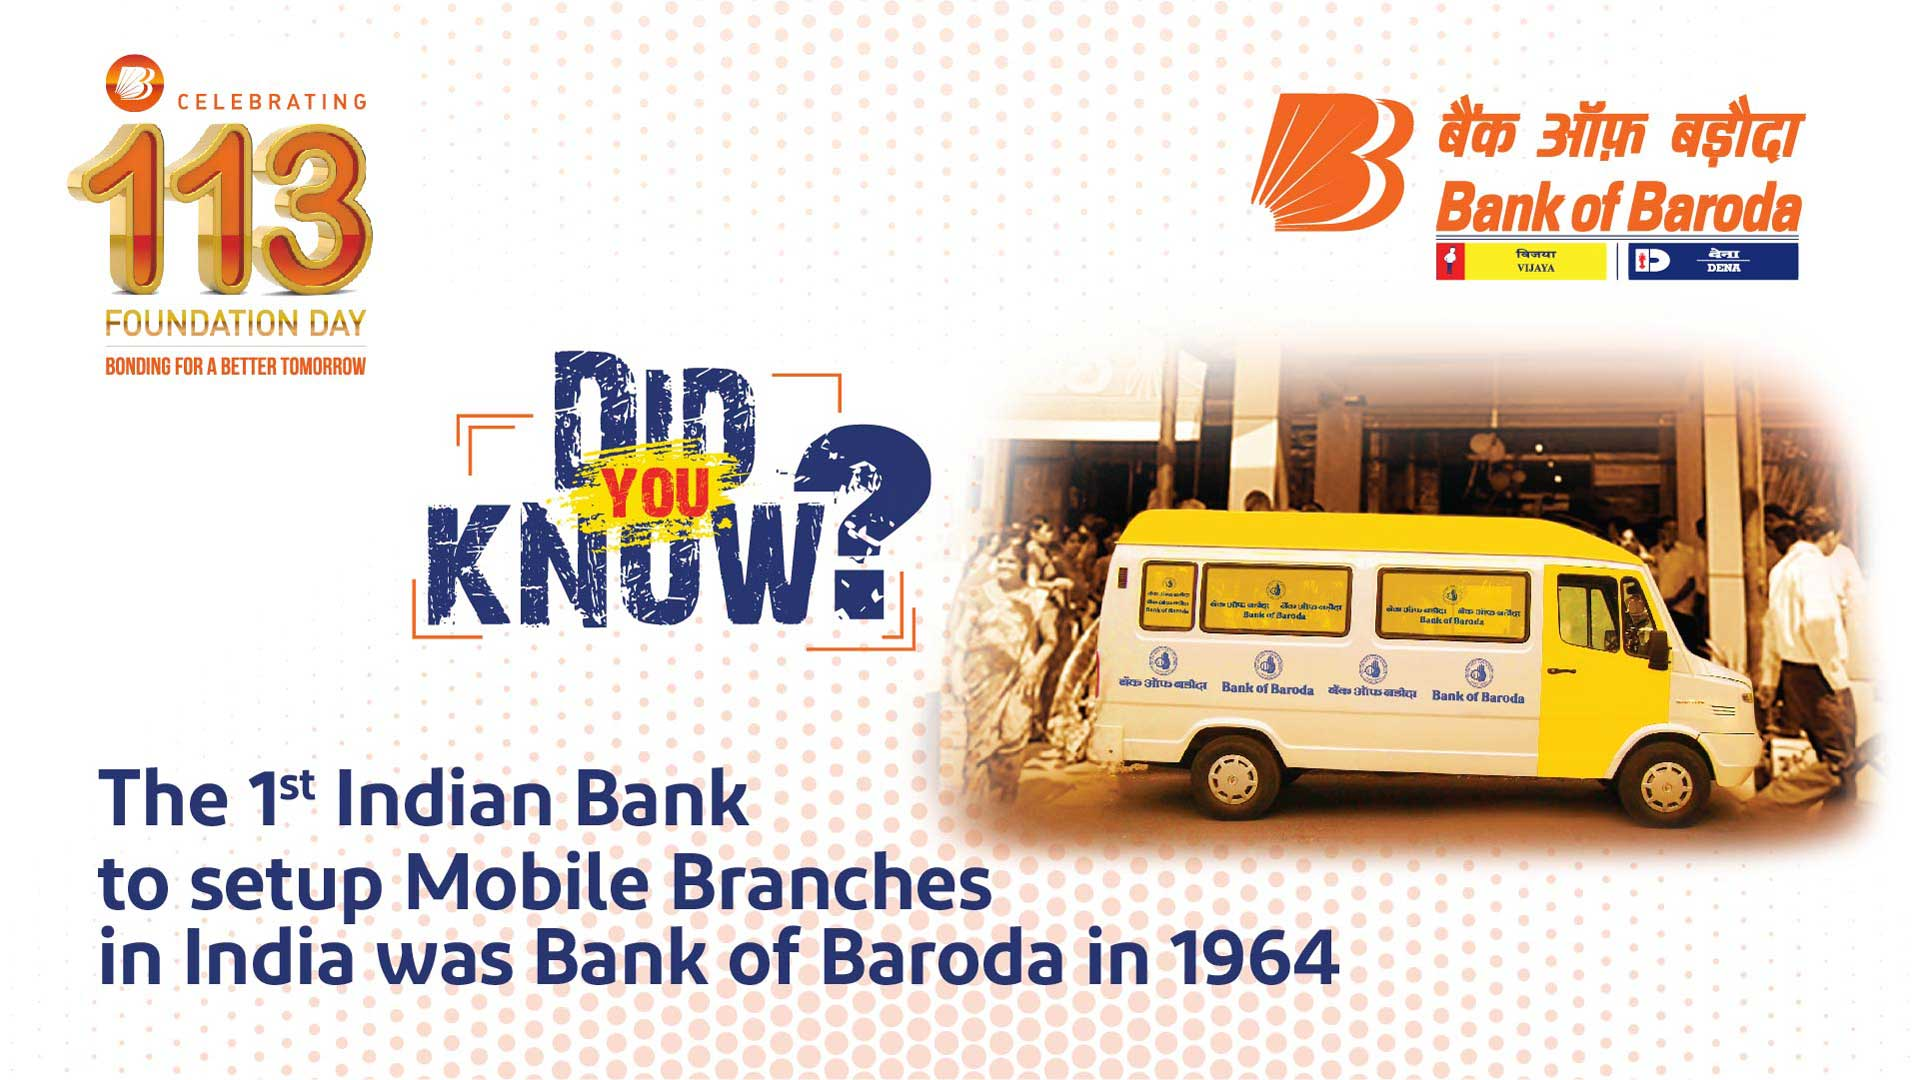 Did You Know? - The 1st Indian Bank to setup Mobile Branches in India in 1964